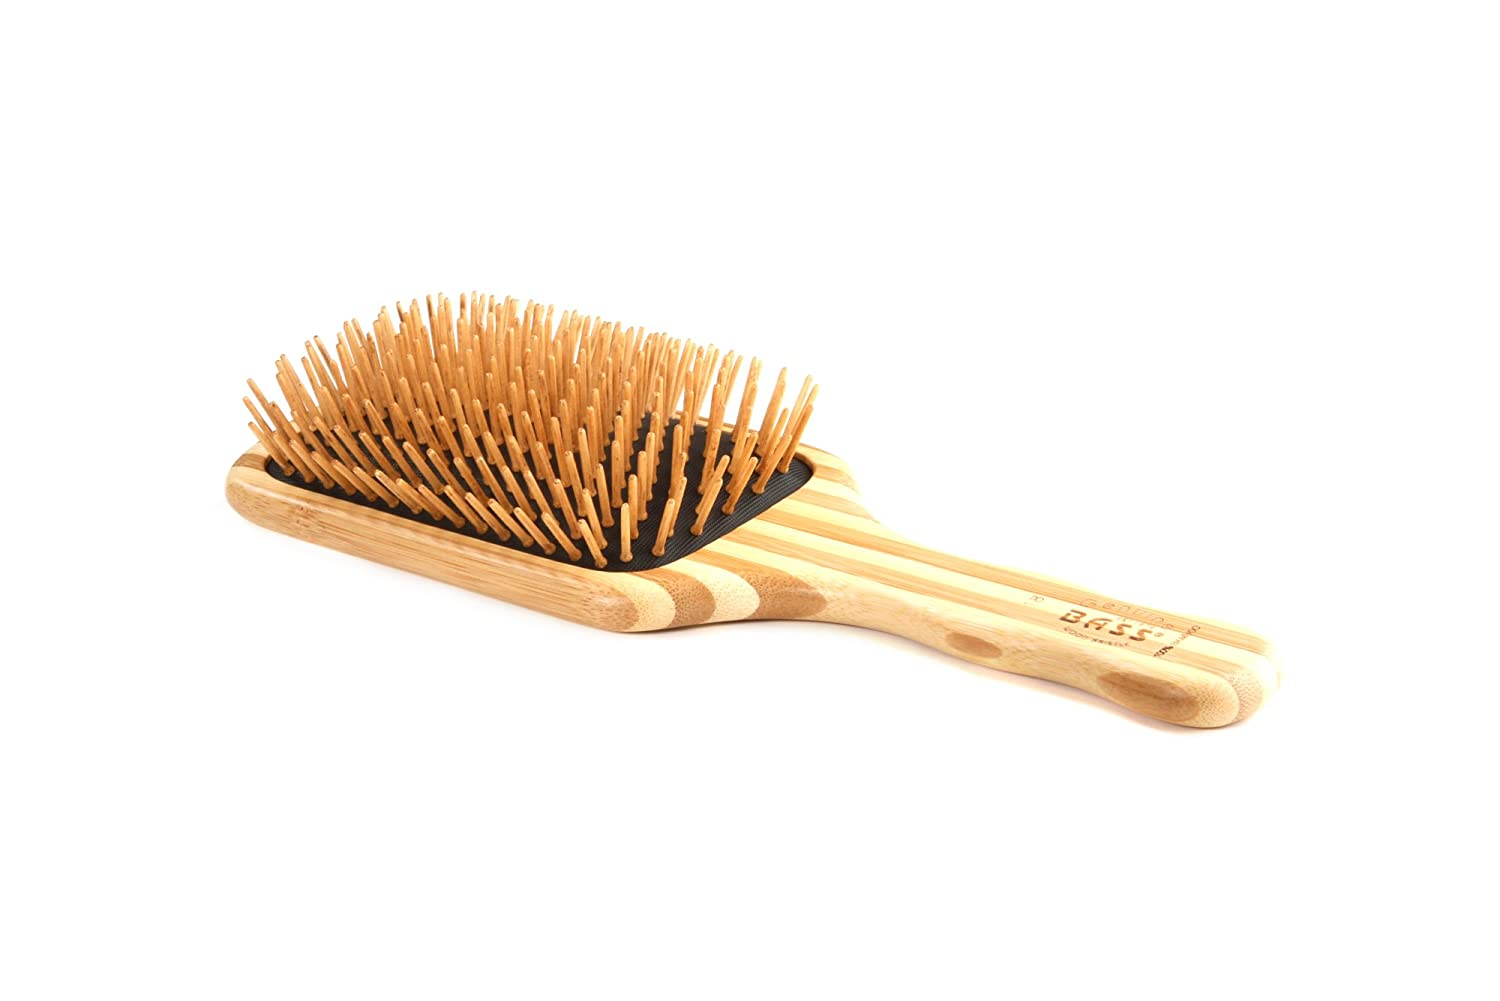 Bass Brushes | The Green Brush | Bamboo Pin + Bamboo Handle Hair Brush | Large Paddle